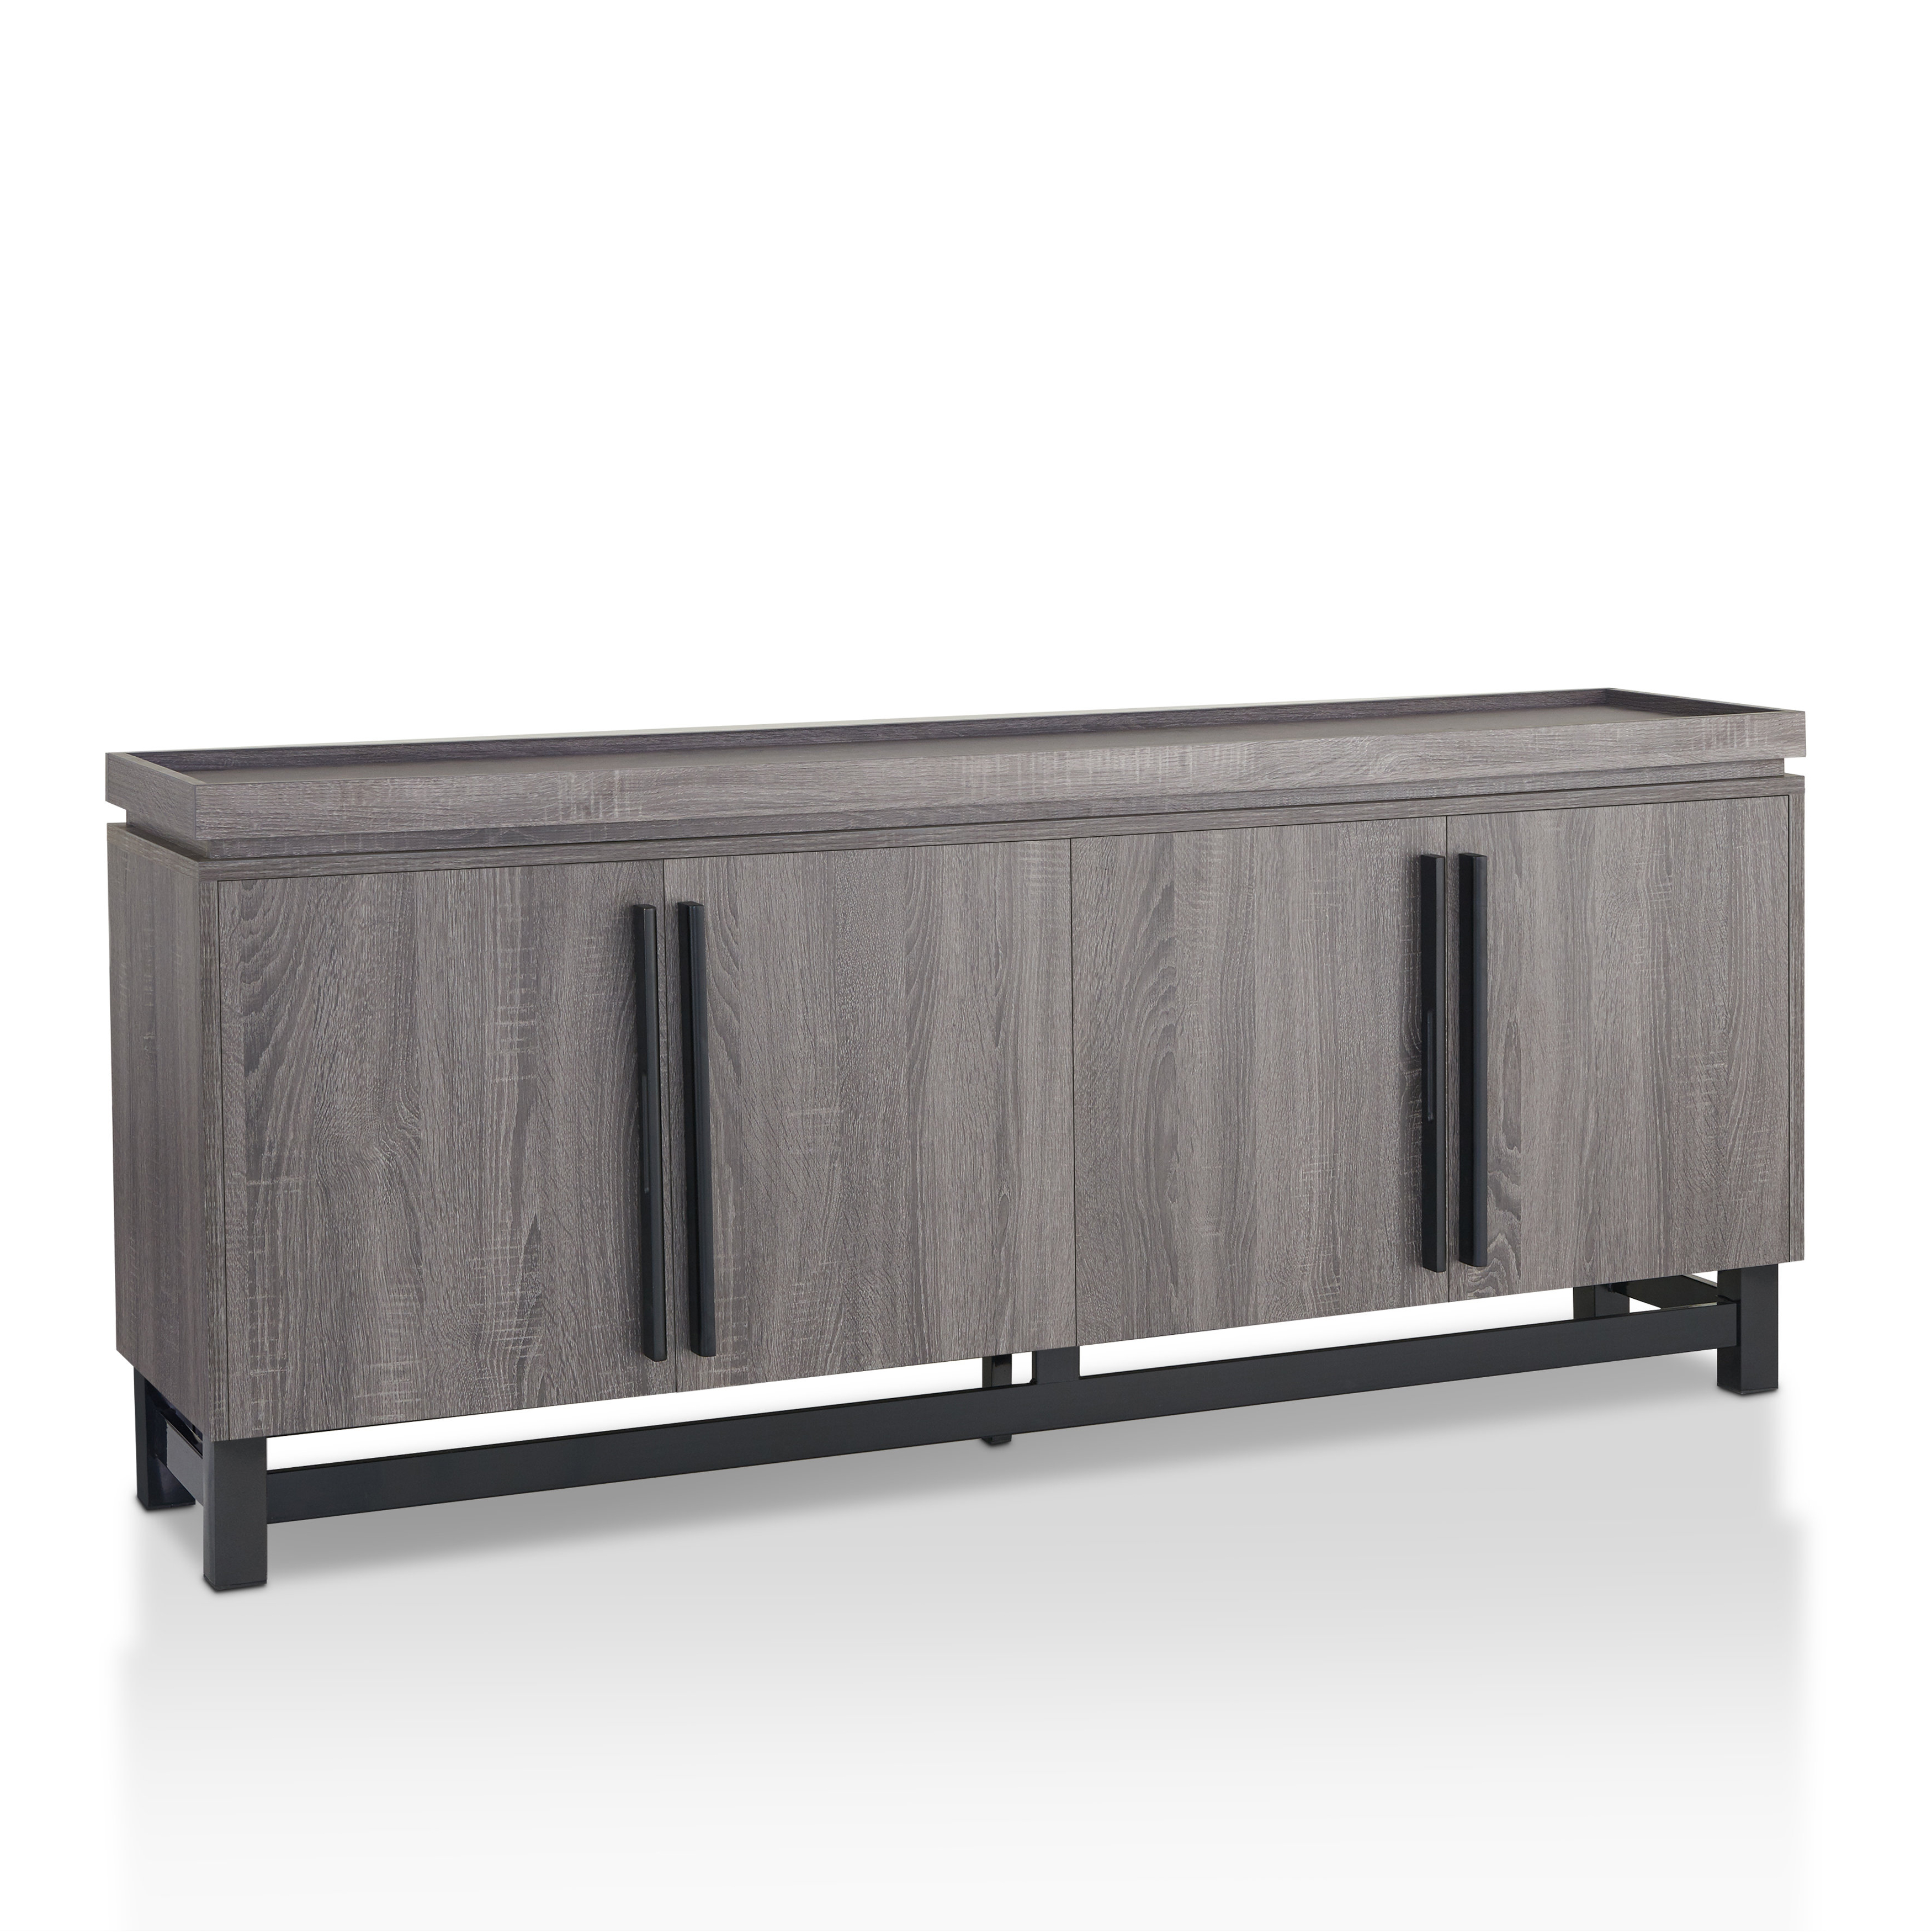 Modern Grey Sideboards + Buffets | Allmodern For Contemporary Style Wooden Buffets With Two Side Door Storage Cabinets (View 13 of 20)